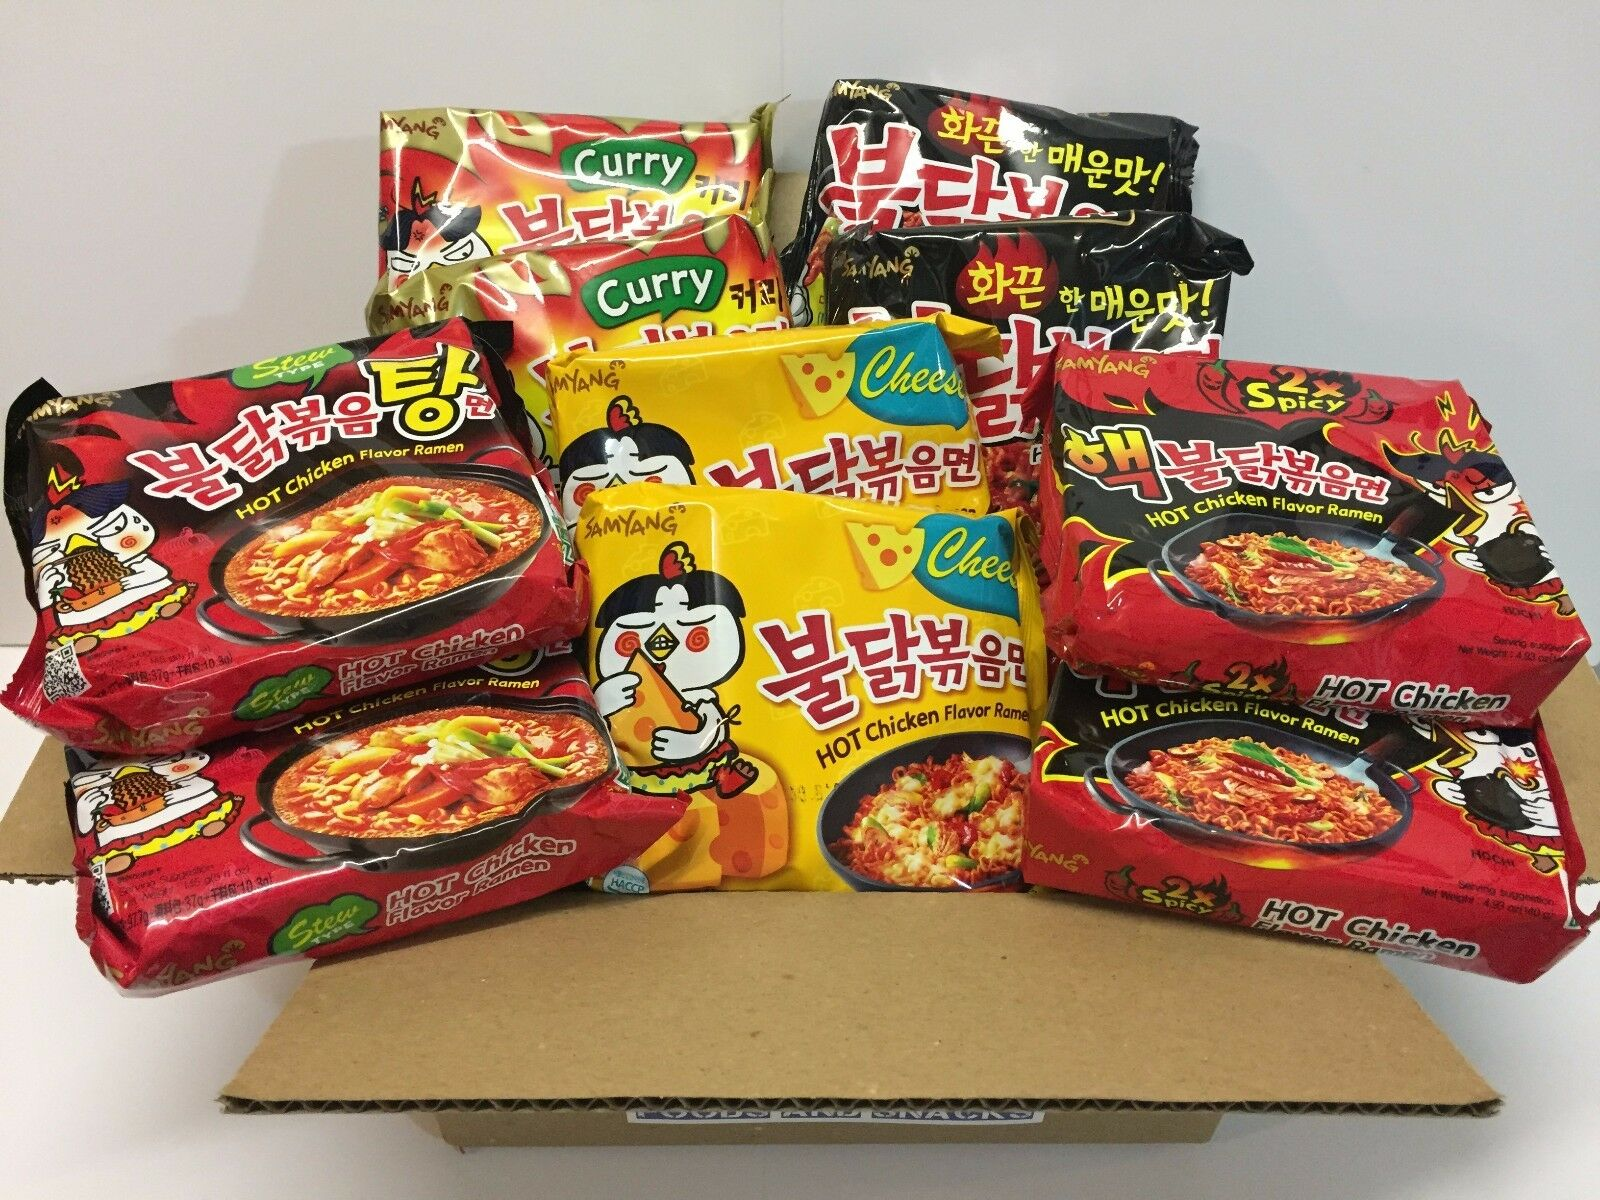 Samyang Spicy Chicken Ramen Noodle Buldak Variety Curry Pk Nongshim Hot Logo Halal Shin Paldo 1 Of 3 See More